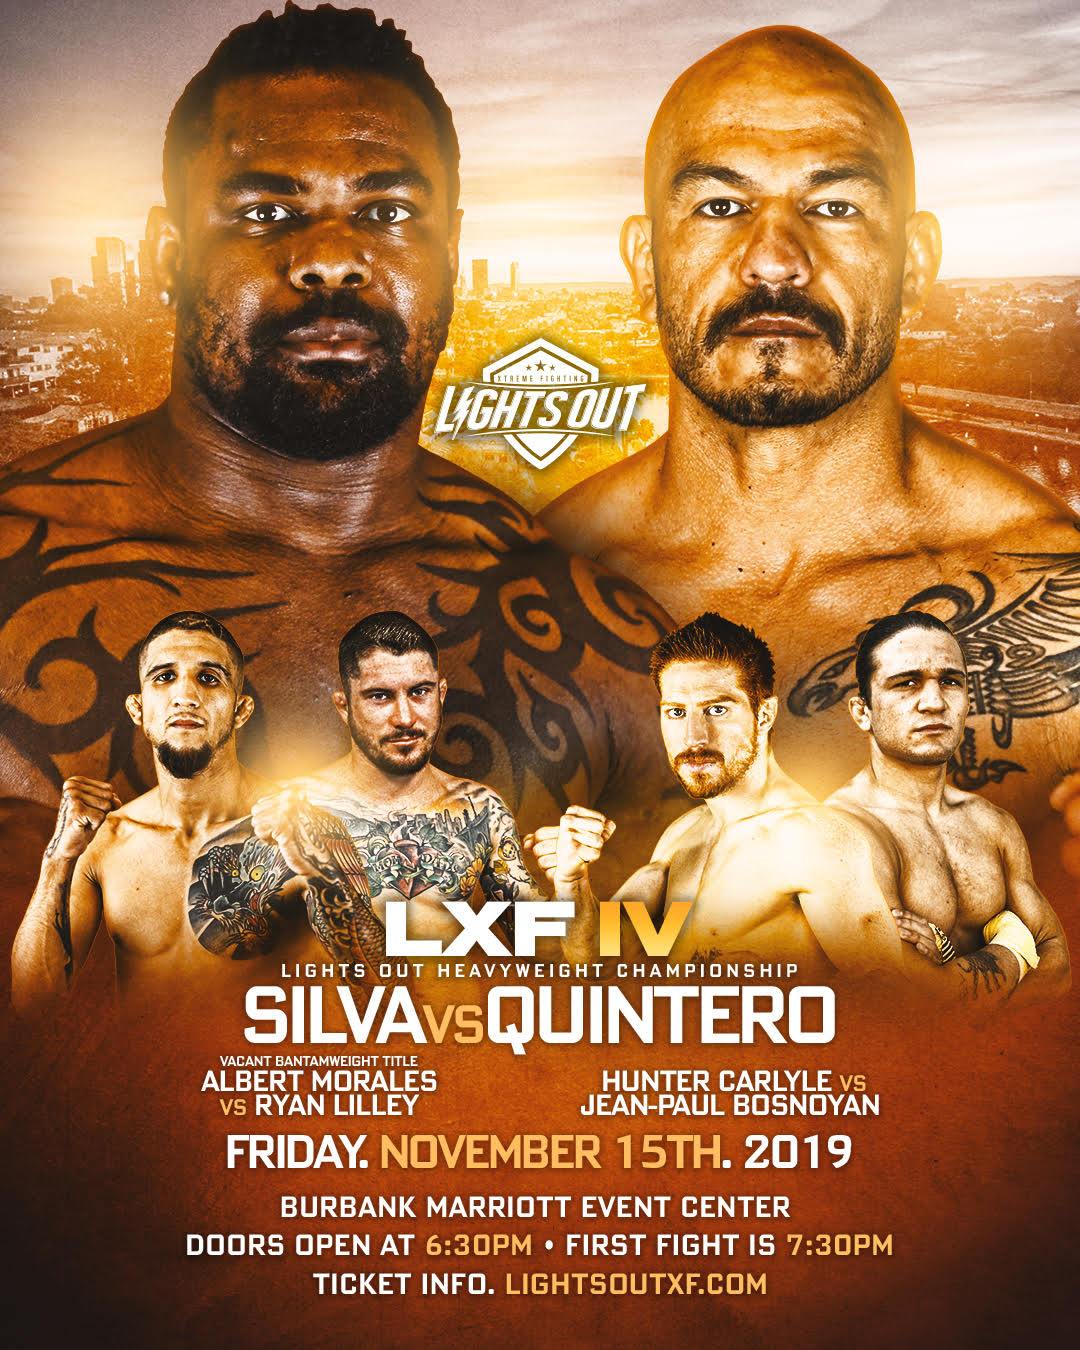 LXF 4 Returns Nov. 15 With Two Title Bouts